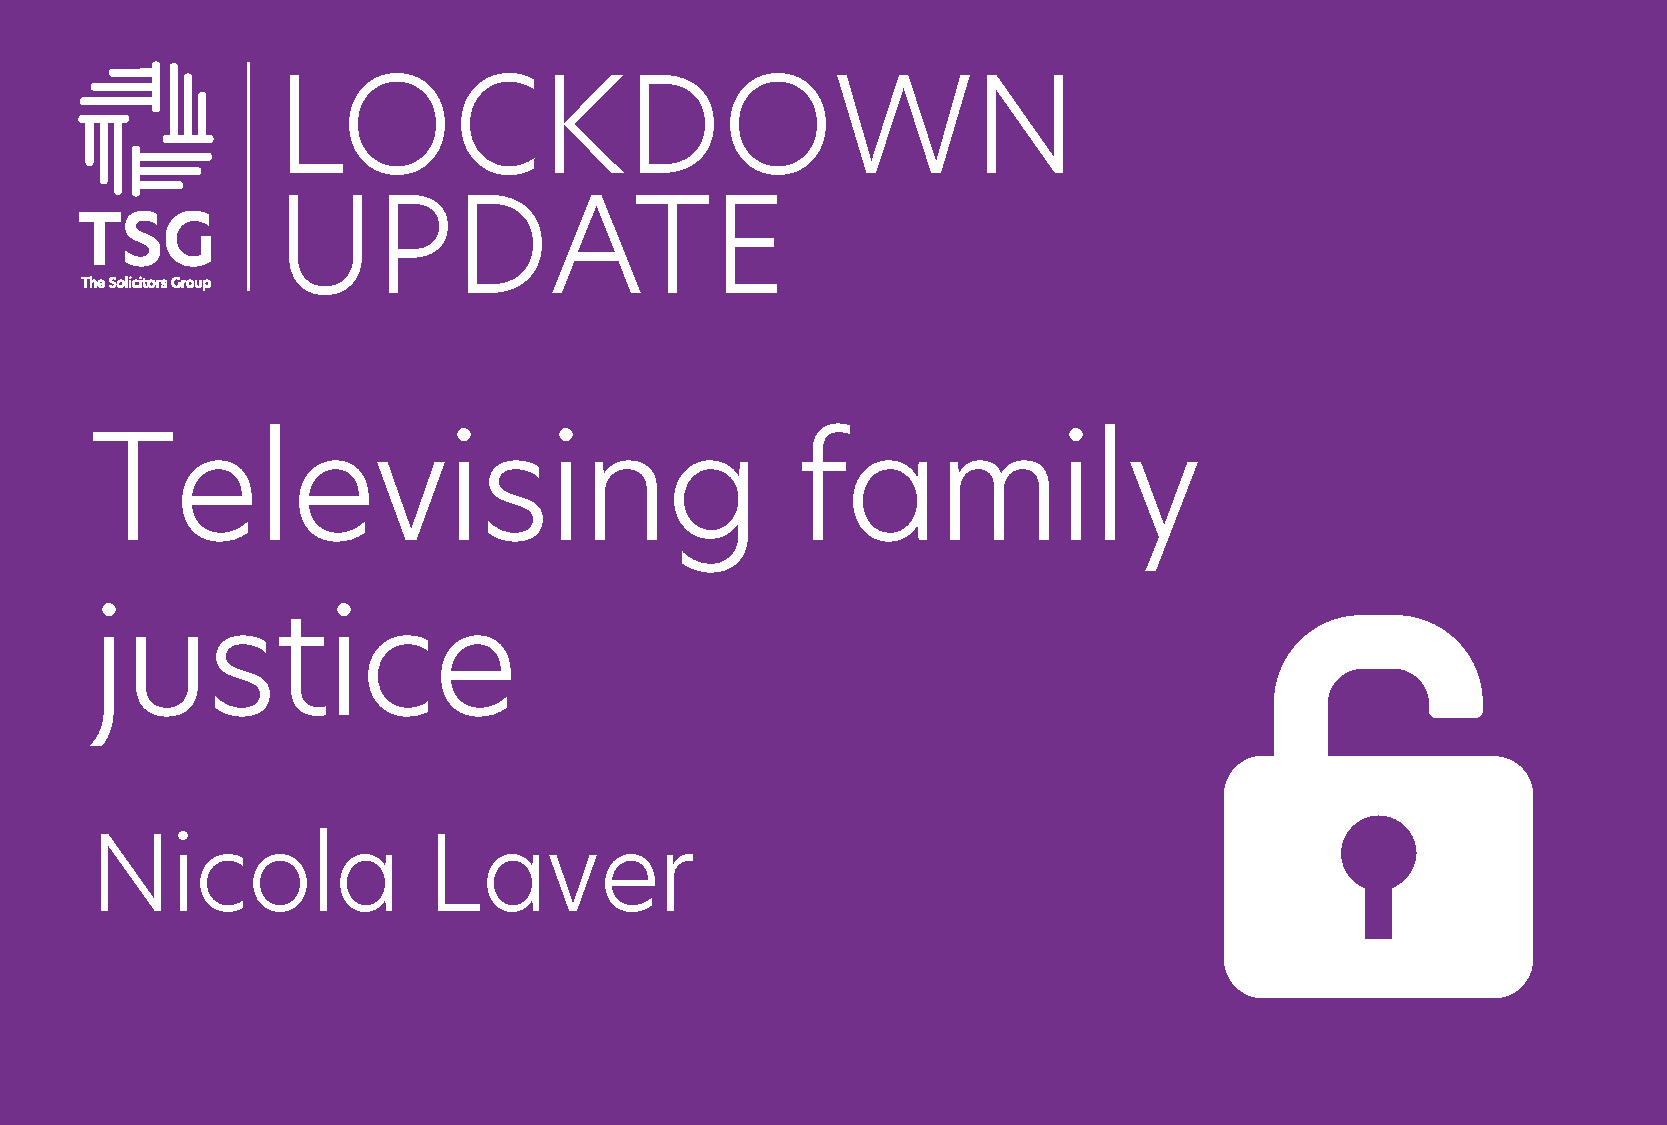 Televising family justice